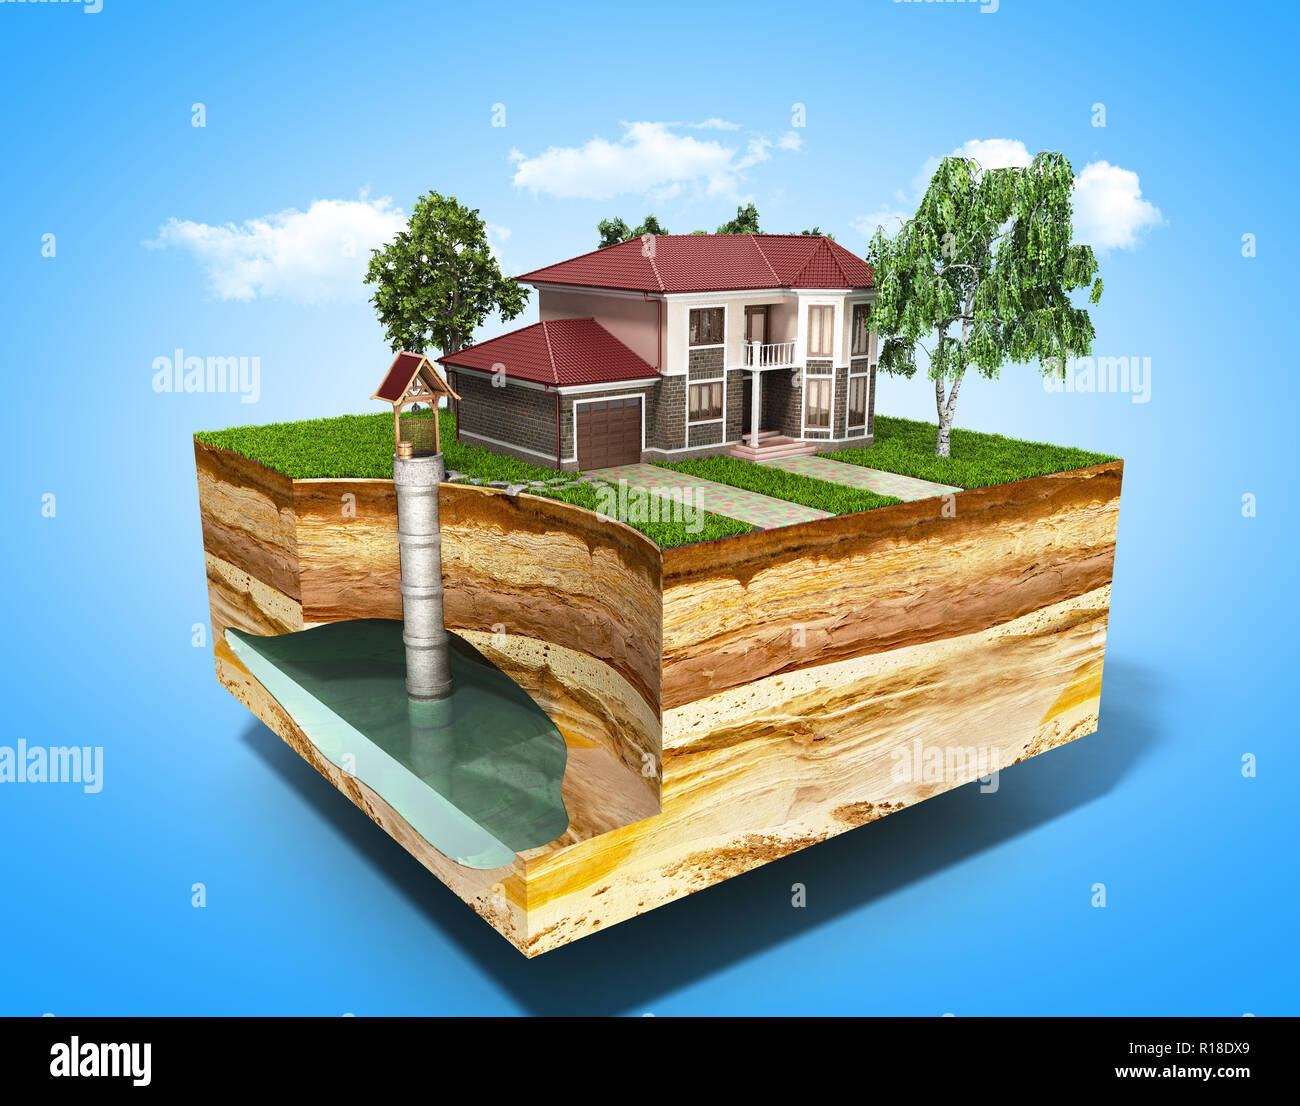 water well system The image depicts an underground aquifer 3d render on blue - Stock Image